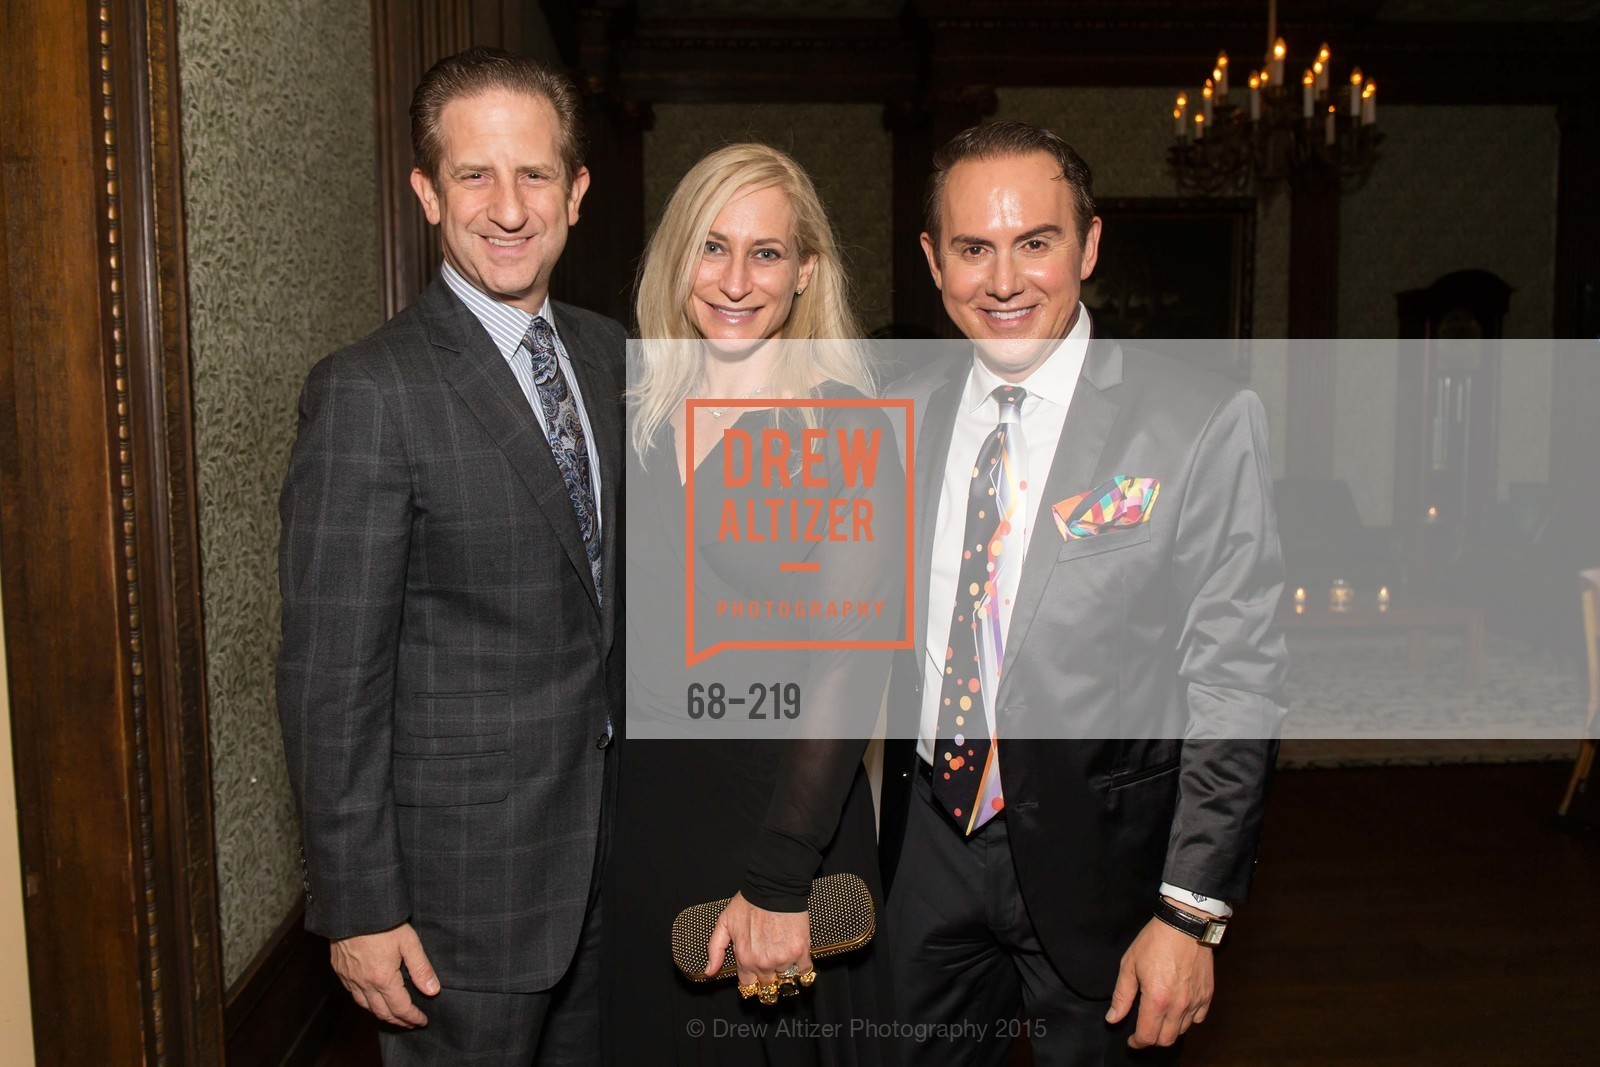 Robert Shwarts, Joni Binder, Joel Goodrich, Champagne Reception & Screening of Million Dollar Listing San Francisco, University Club. 800 Powell St, August 5th, 2015,Drew Altizer, Drew Altizer Photography, full-service agency, private events, San Francisco photographer, photographer california